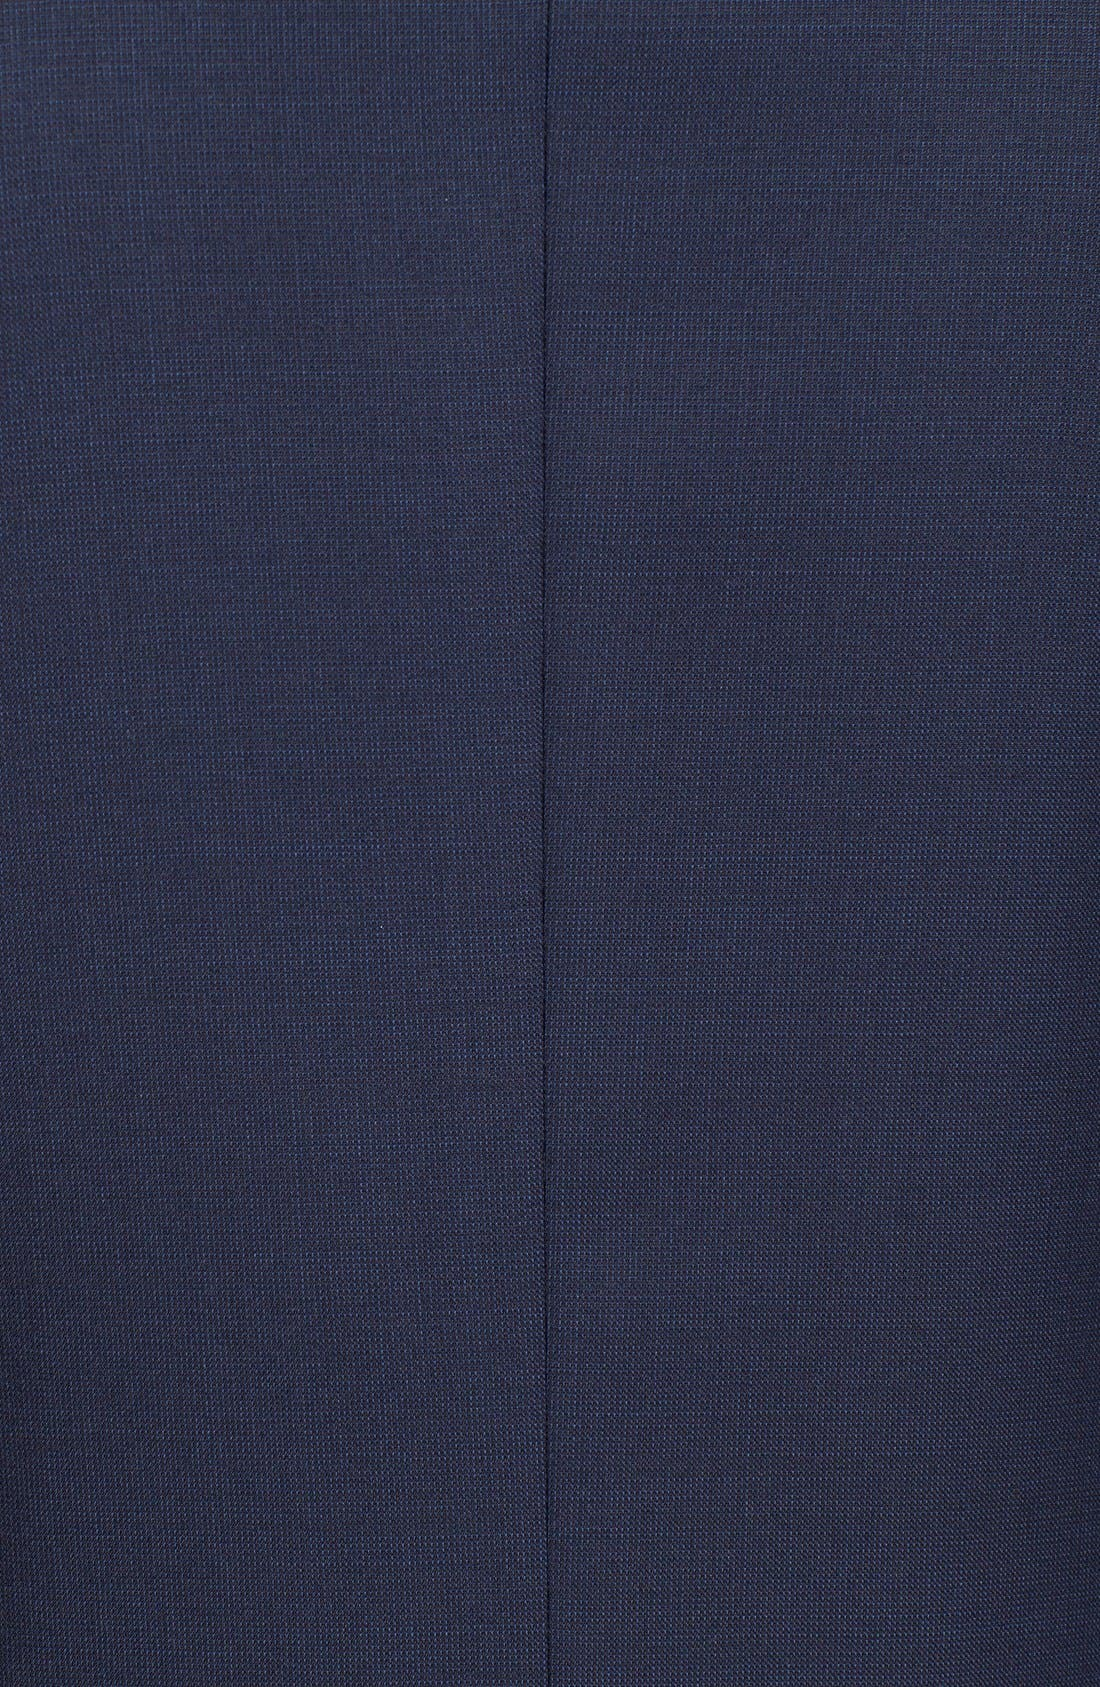 Trevi Trim Fit Wool Blazer,                             Alternate thumbnail 11, color,                             NAVY